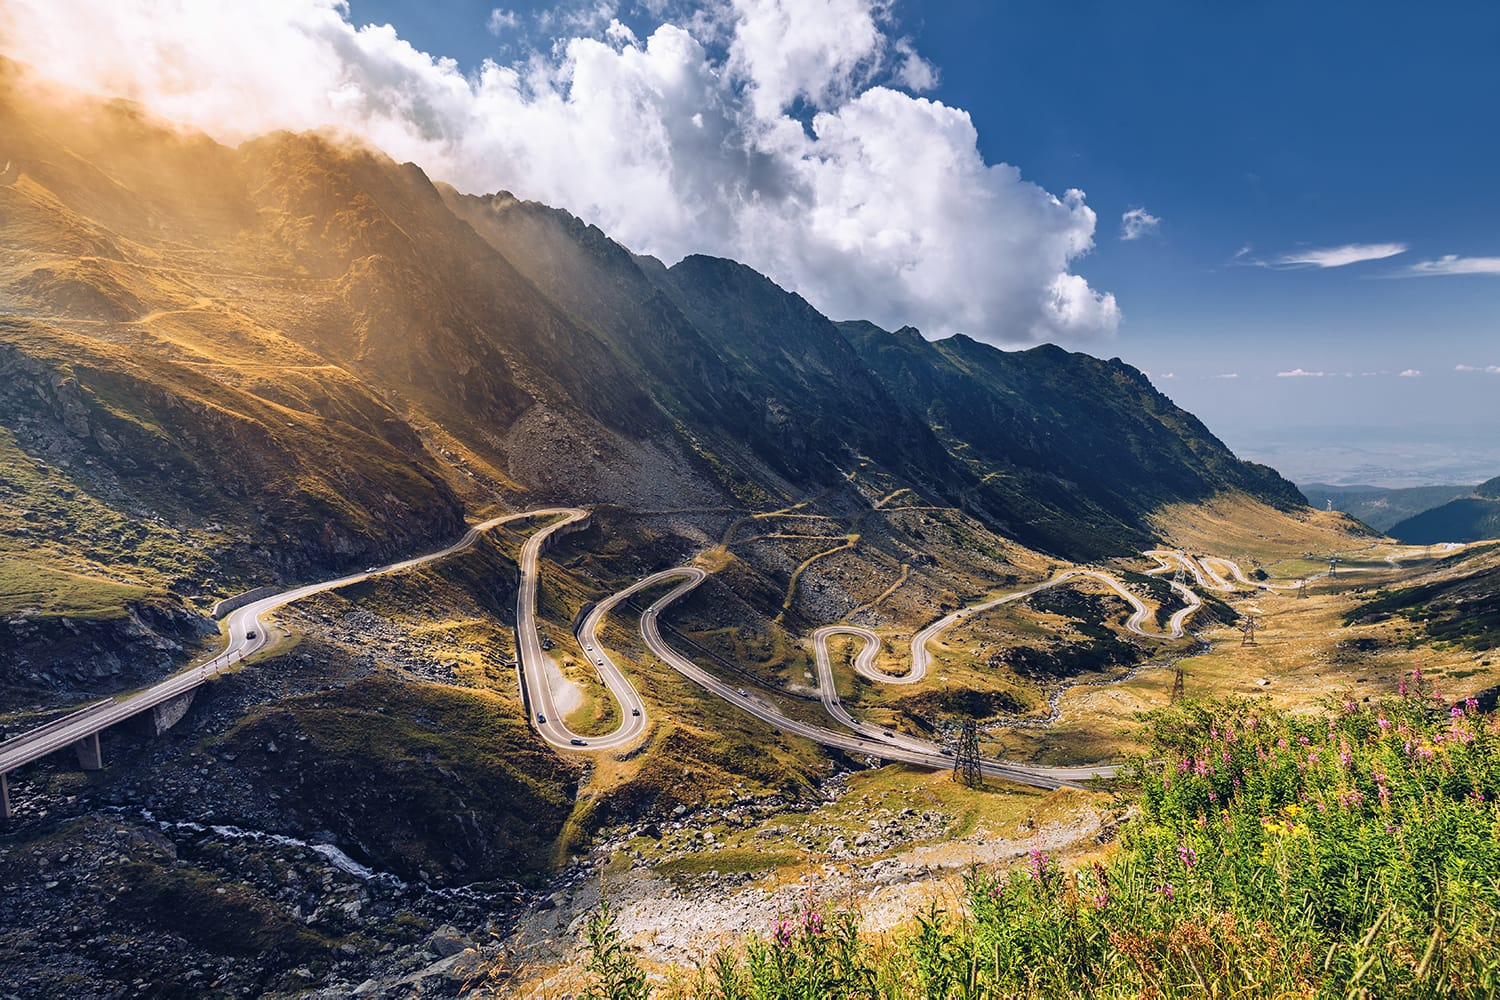 Transfagarasan pass in summer. Crossing Carpathian mountains in Romania, Transfagarasan is one of the most spectacular mountain roads in the world